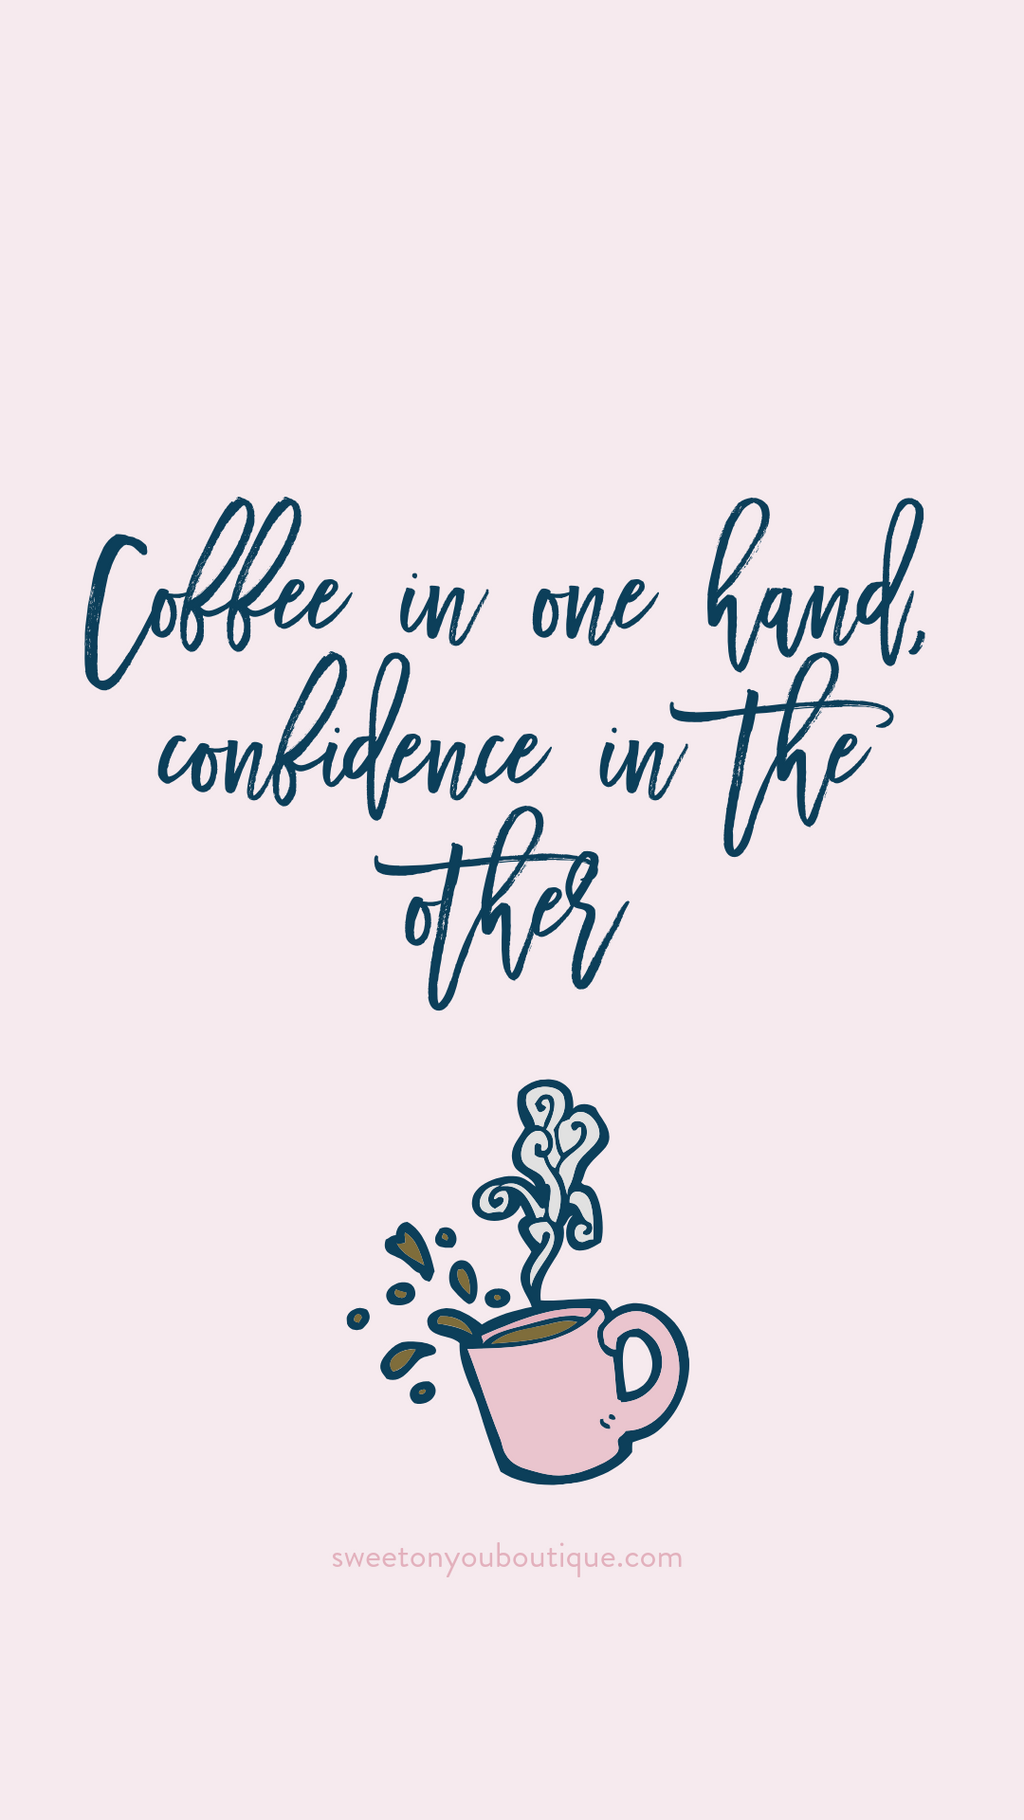 Coffee + Confidence